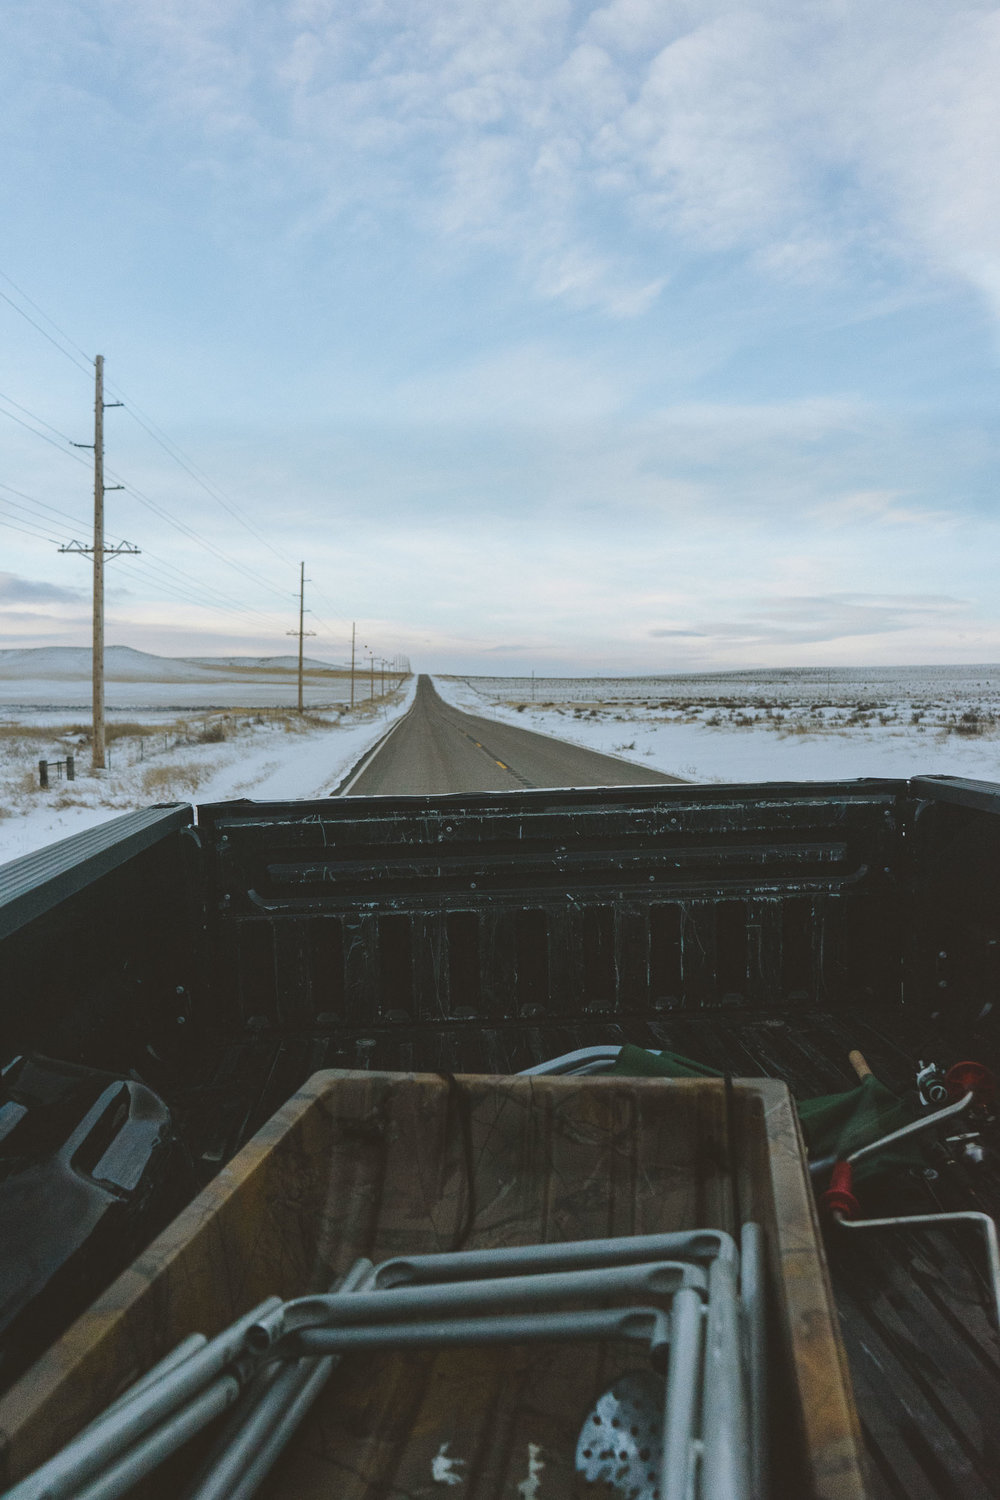 View out the back of a pickup truck. Going fishing in the morning.